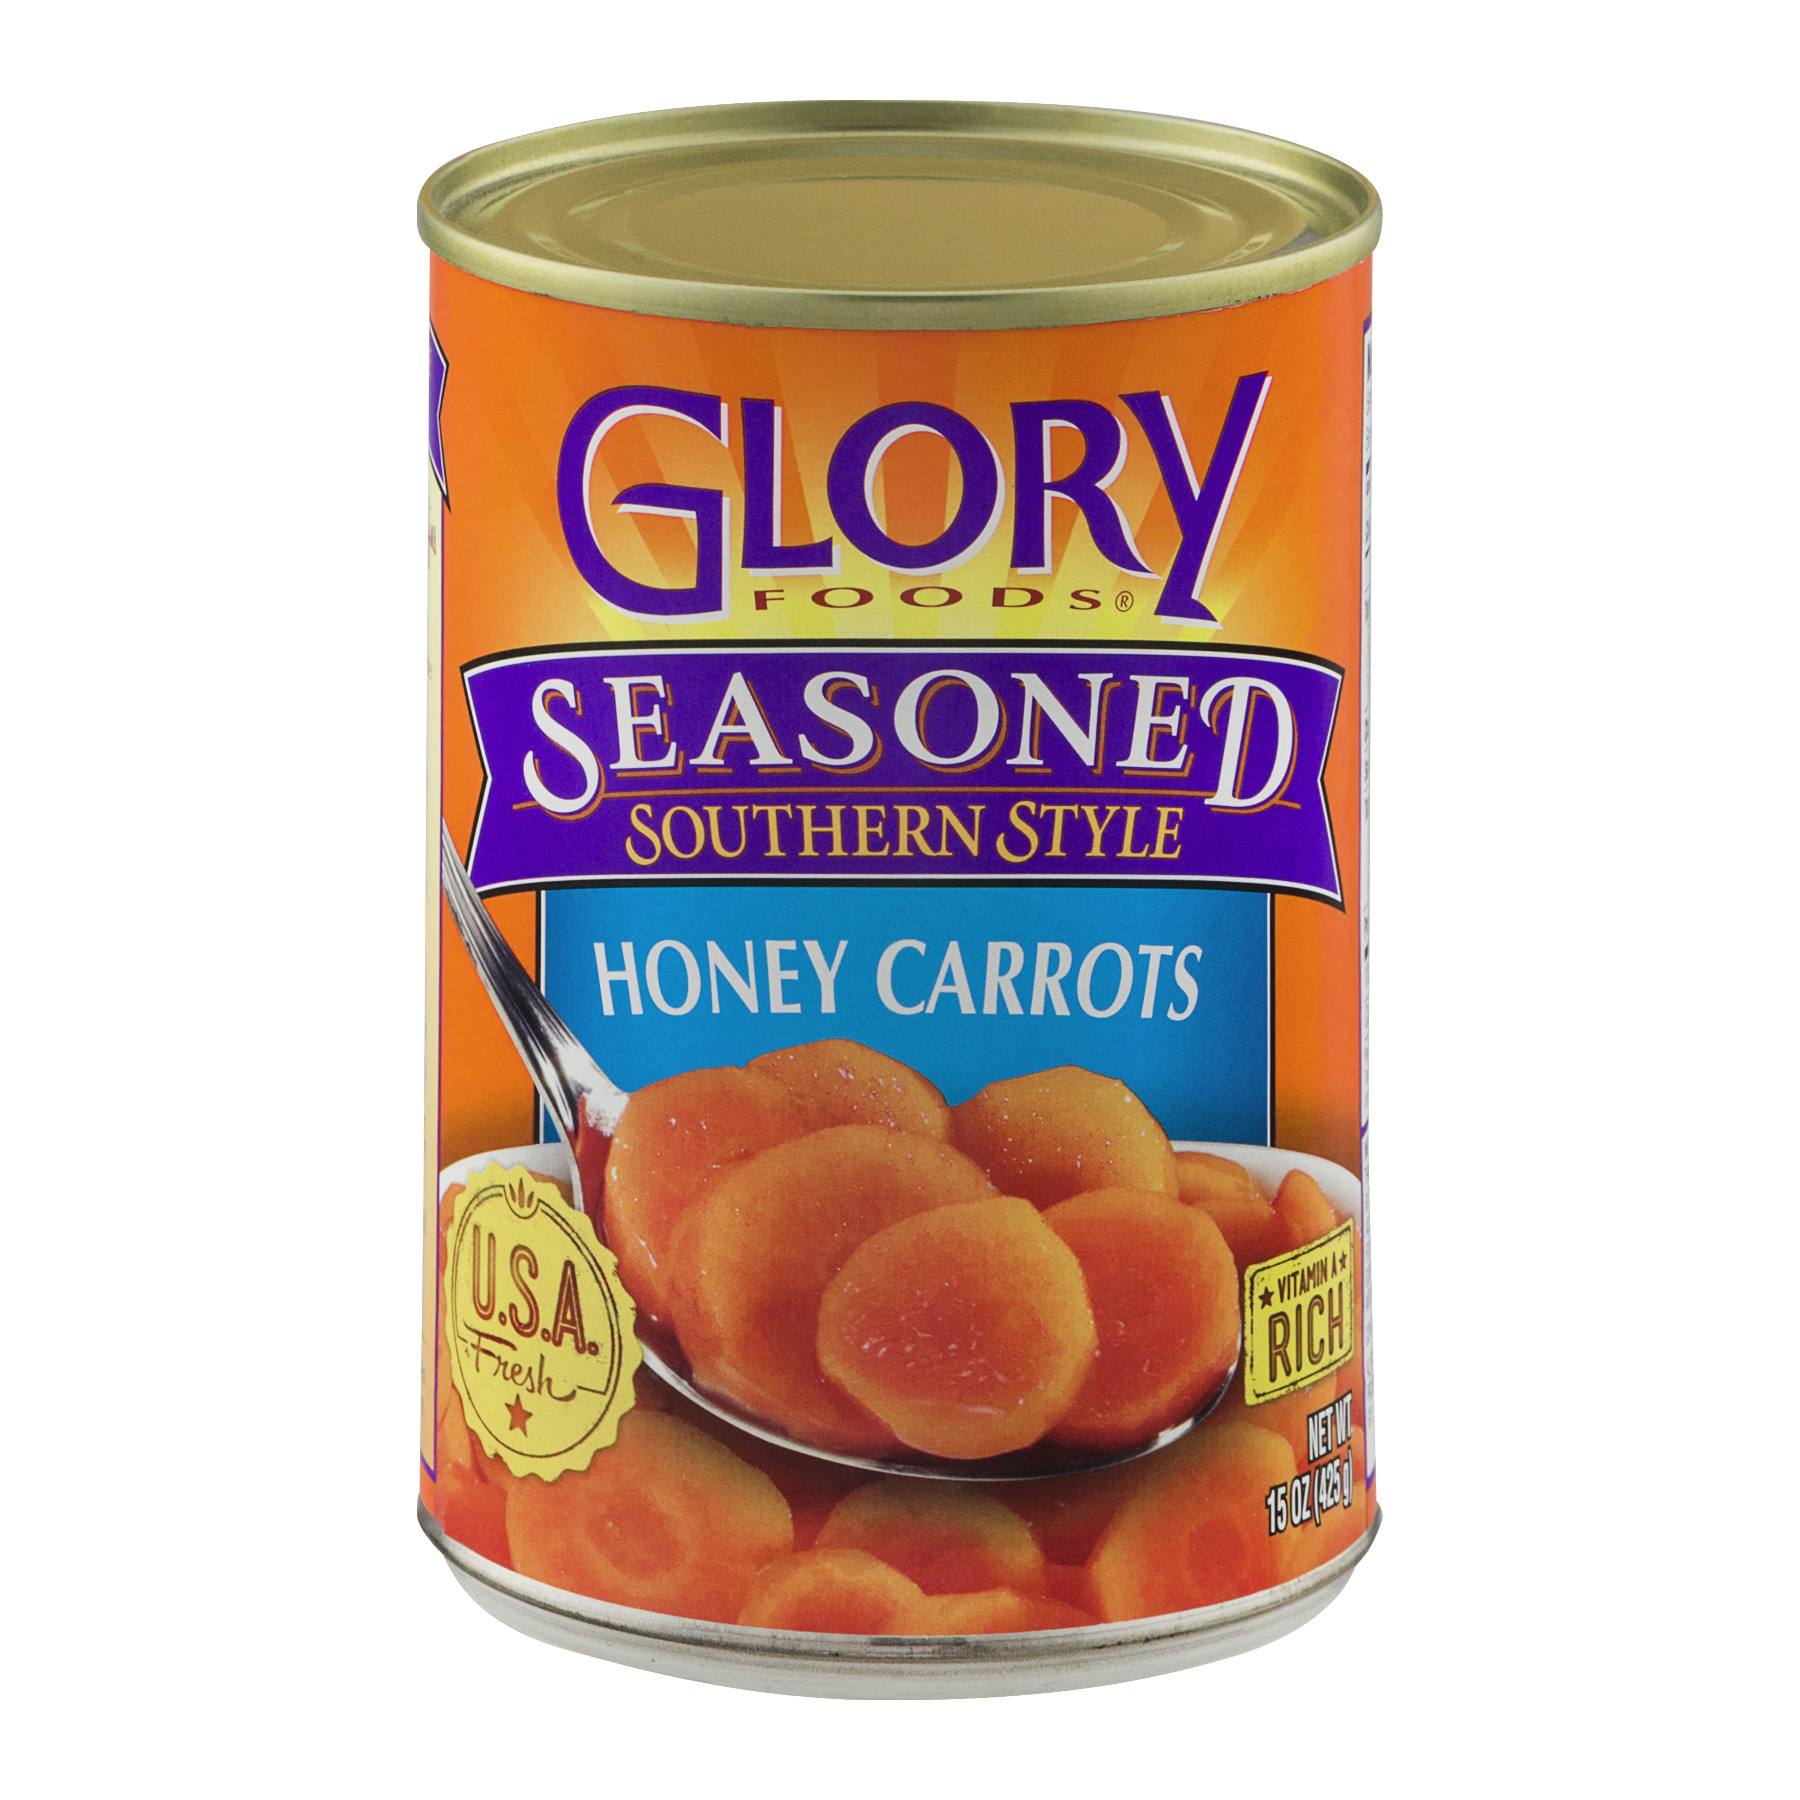 Glory Foods Seasoned Southern Style Honey Carrots, 15 Oz